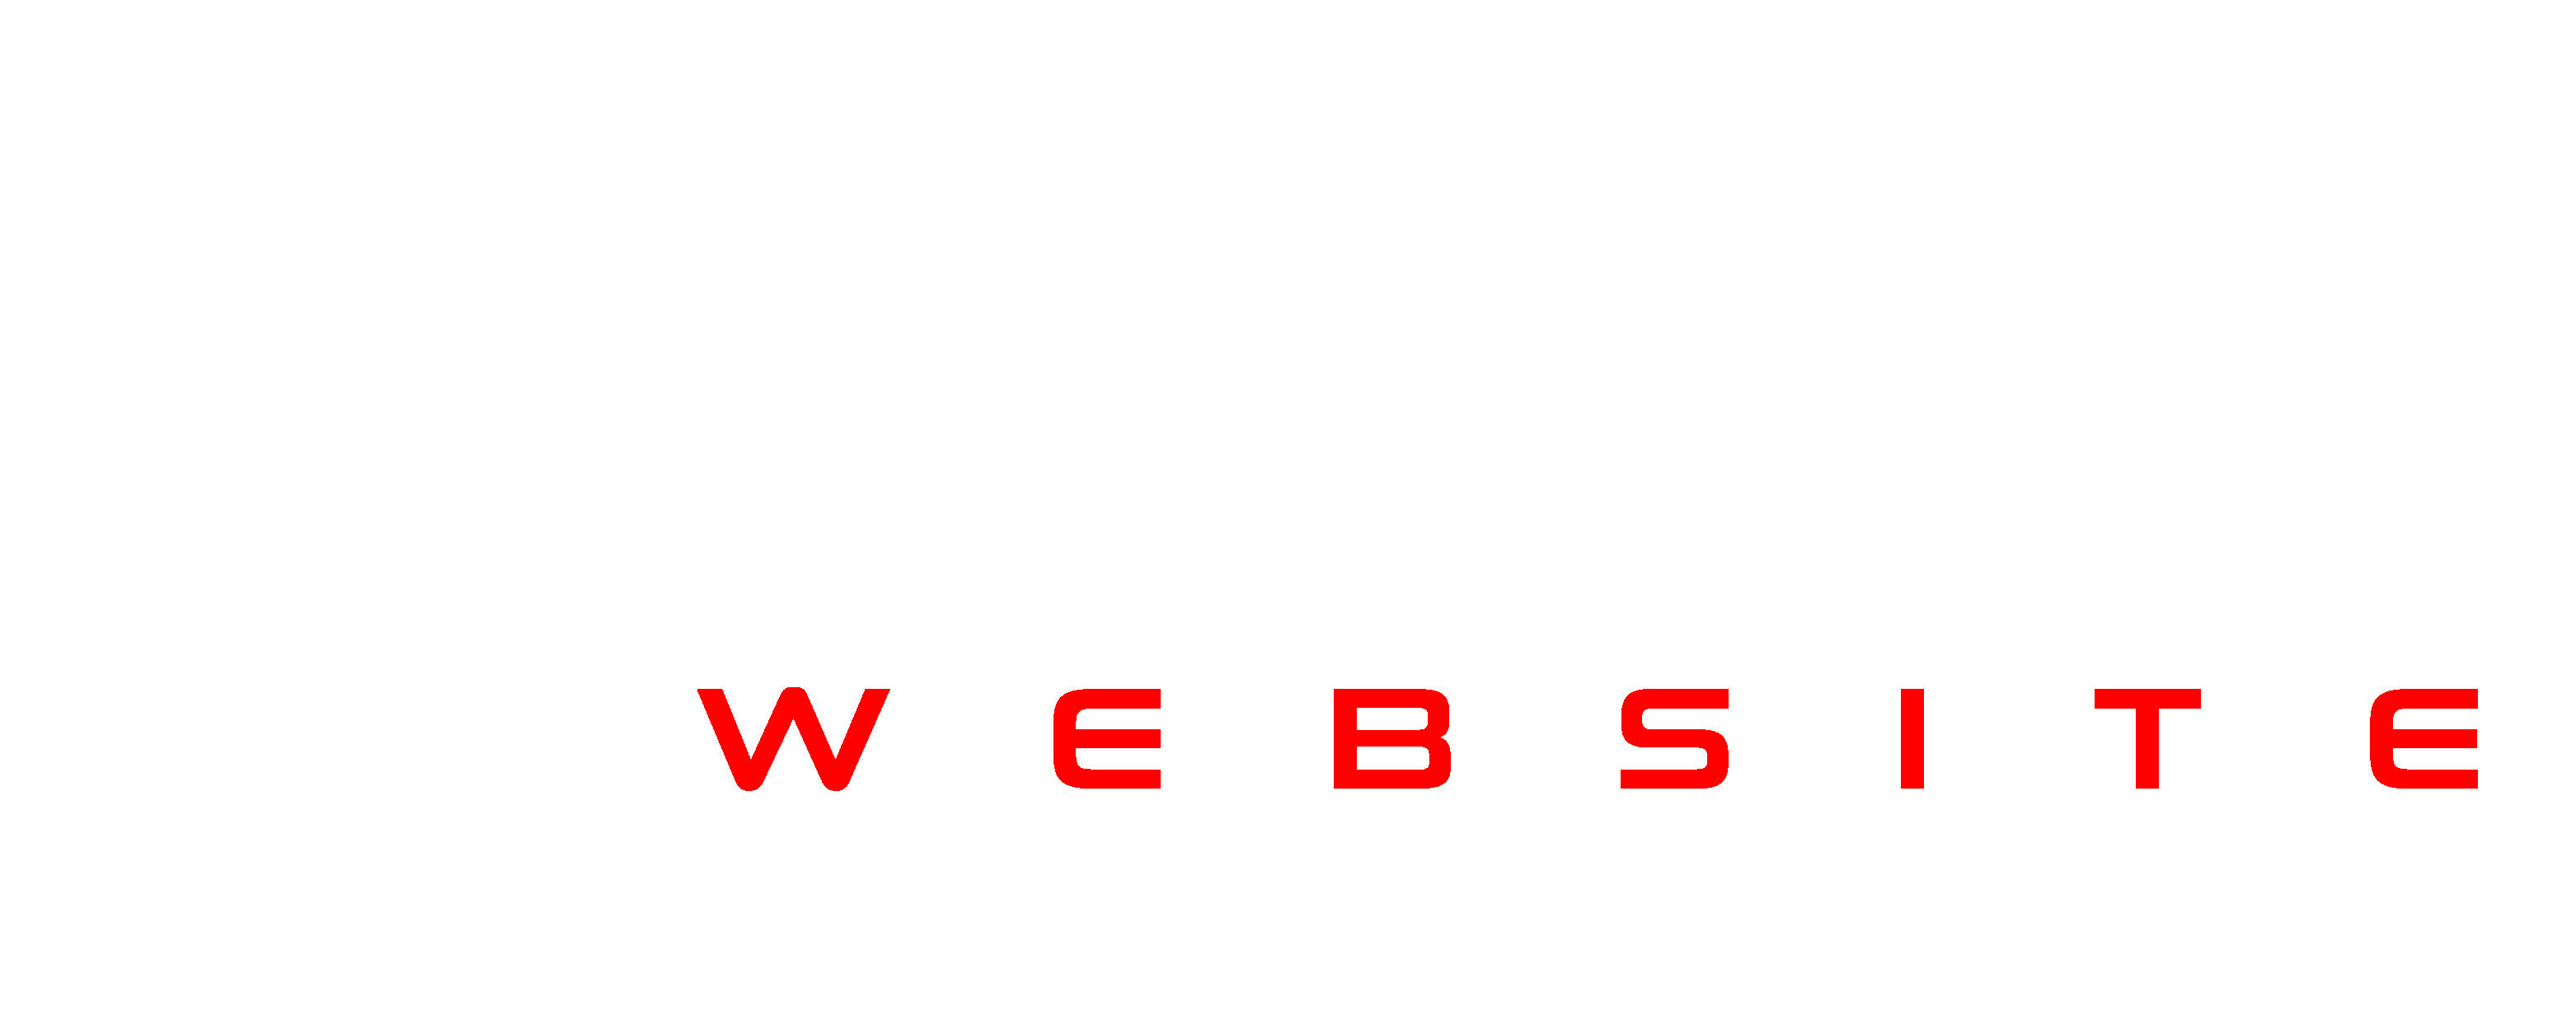 FIX HACKED WEBSITE- New footer